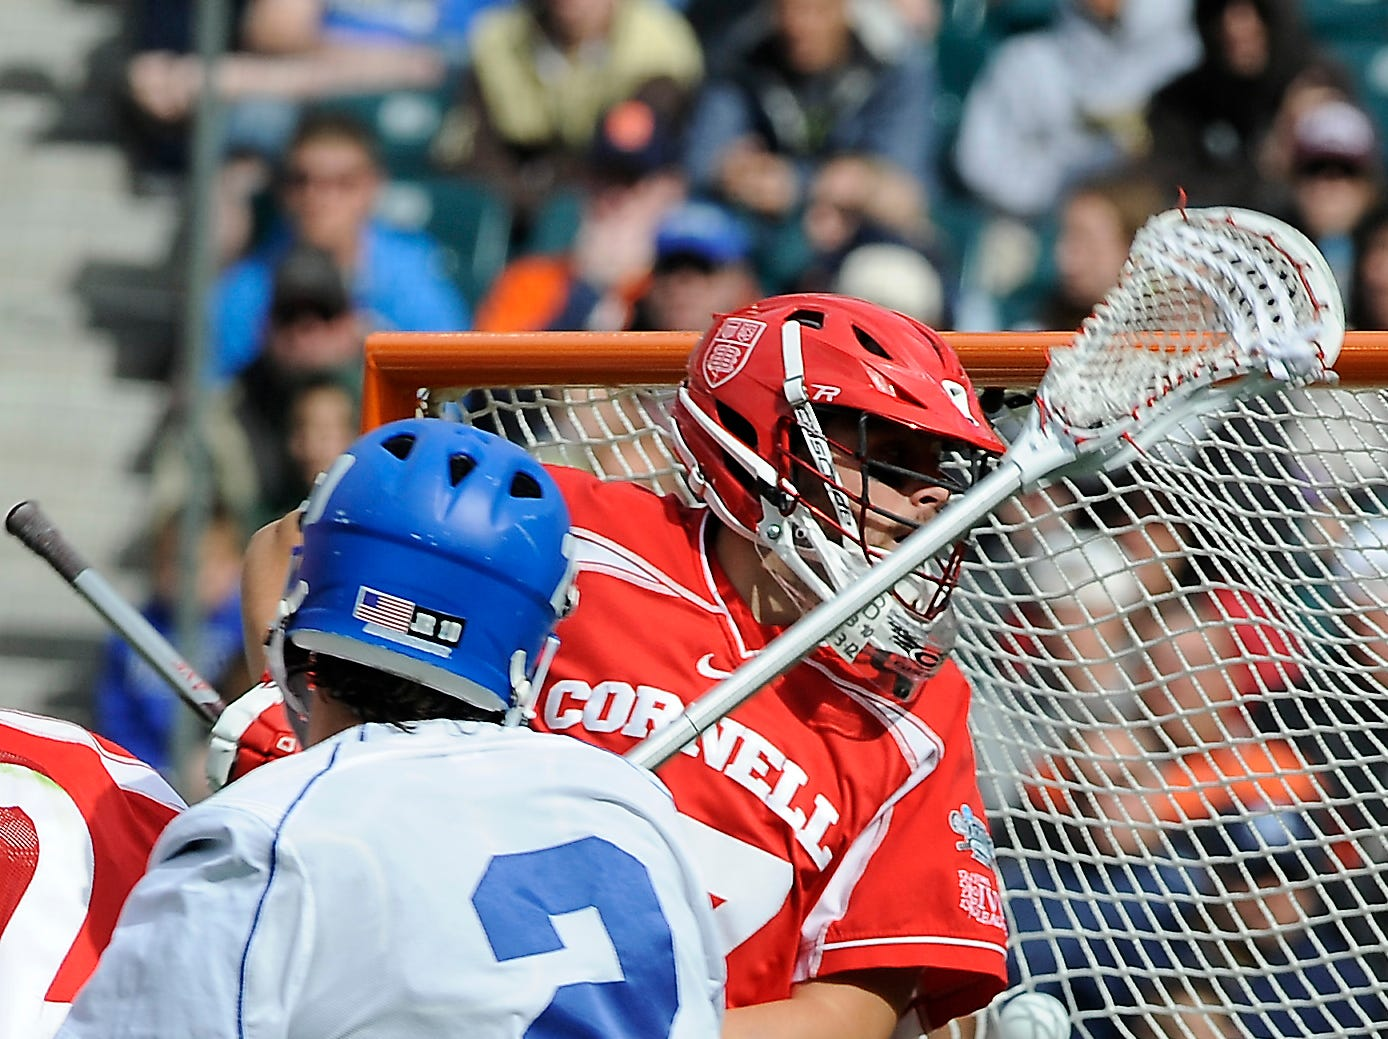 Duke's David Lawson (2) scores on Cornell's AJ Fiore (47) during the second half of an NCAA college Division 1 semifinal lacrosse game on Saturday, May 25, 2013, in Philadelphia. Duke won 16-14.